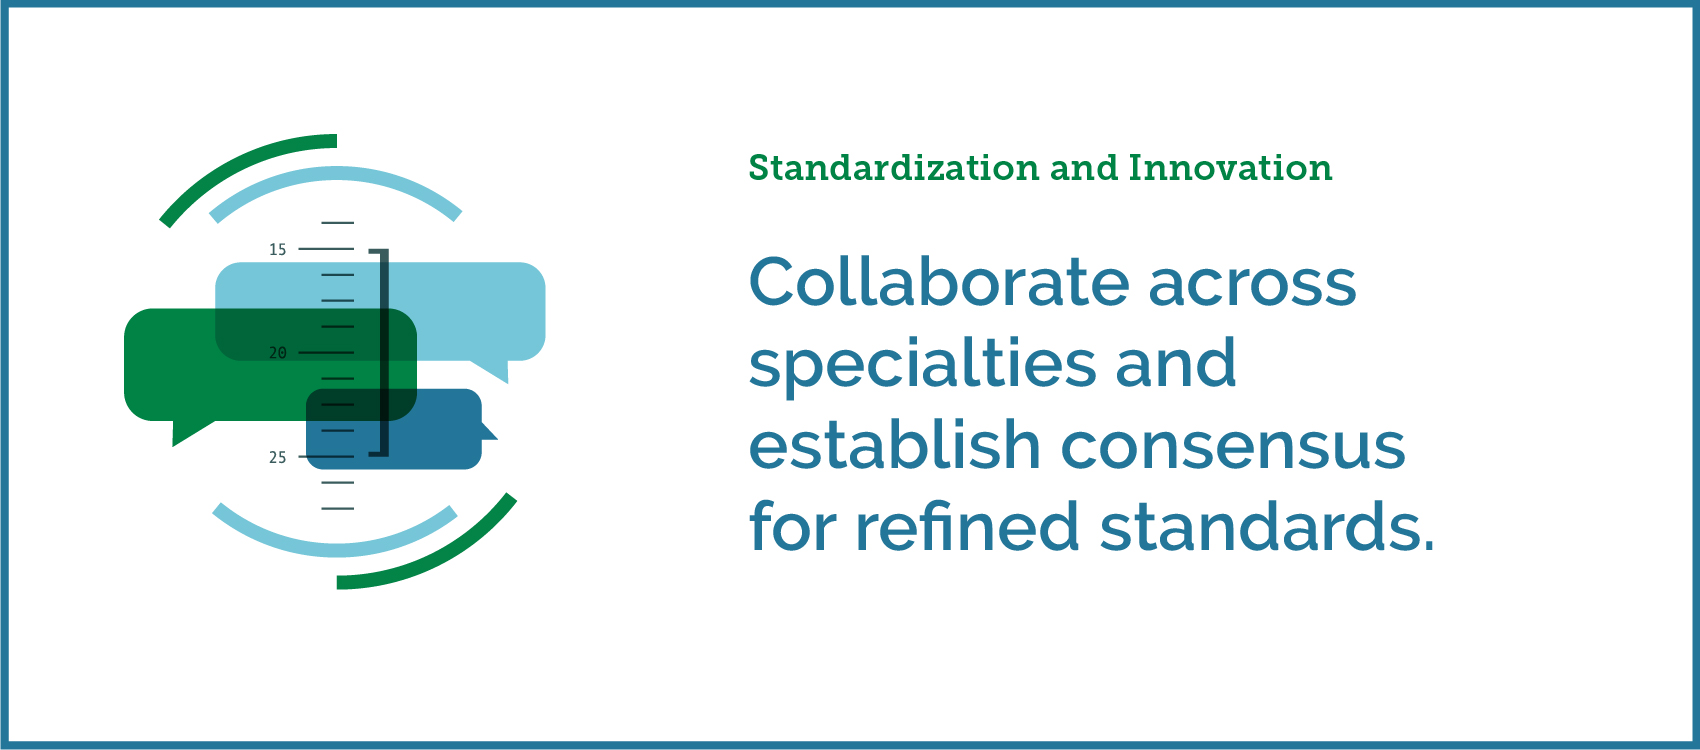 Standardization and Innovation